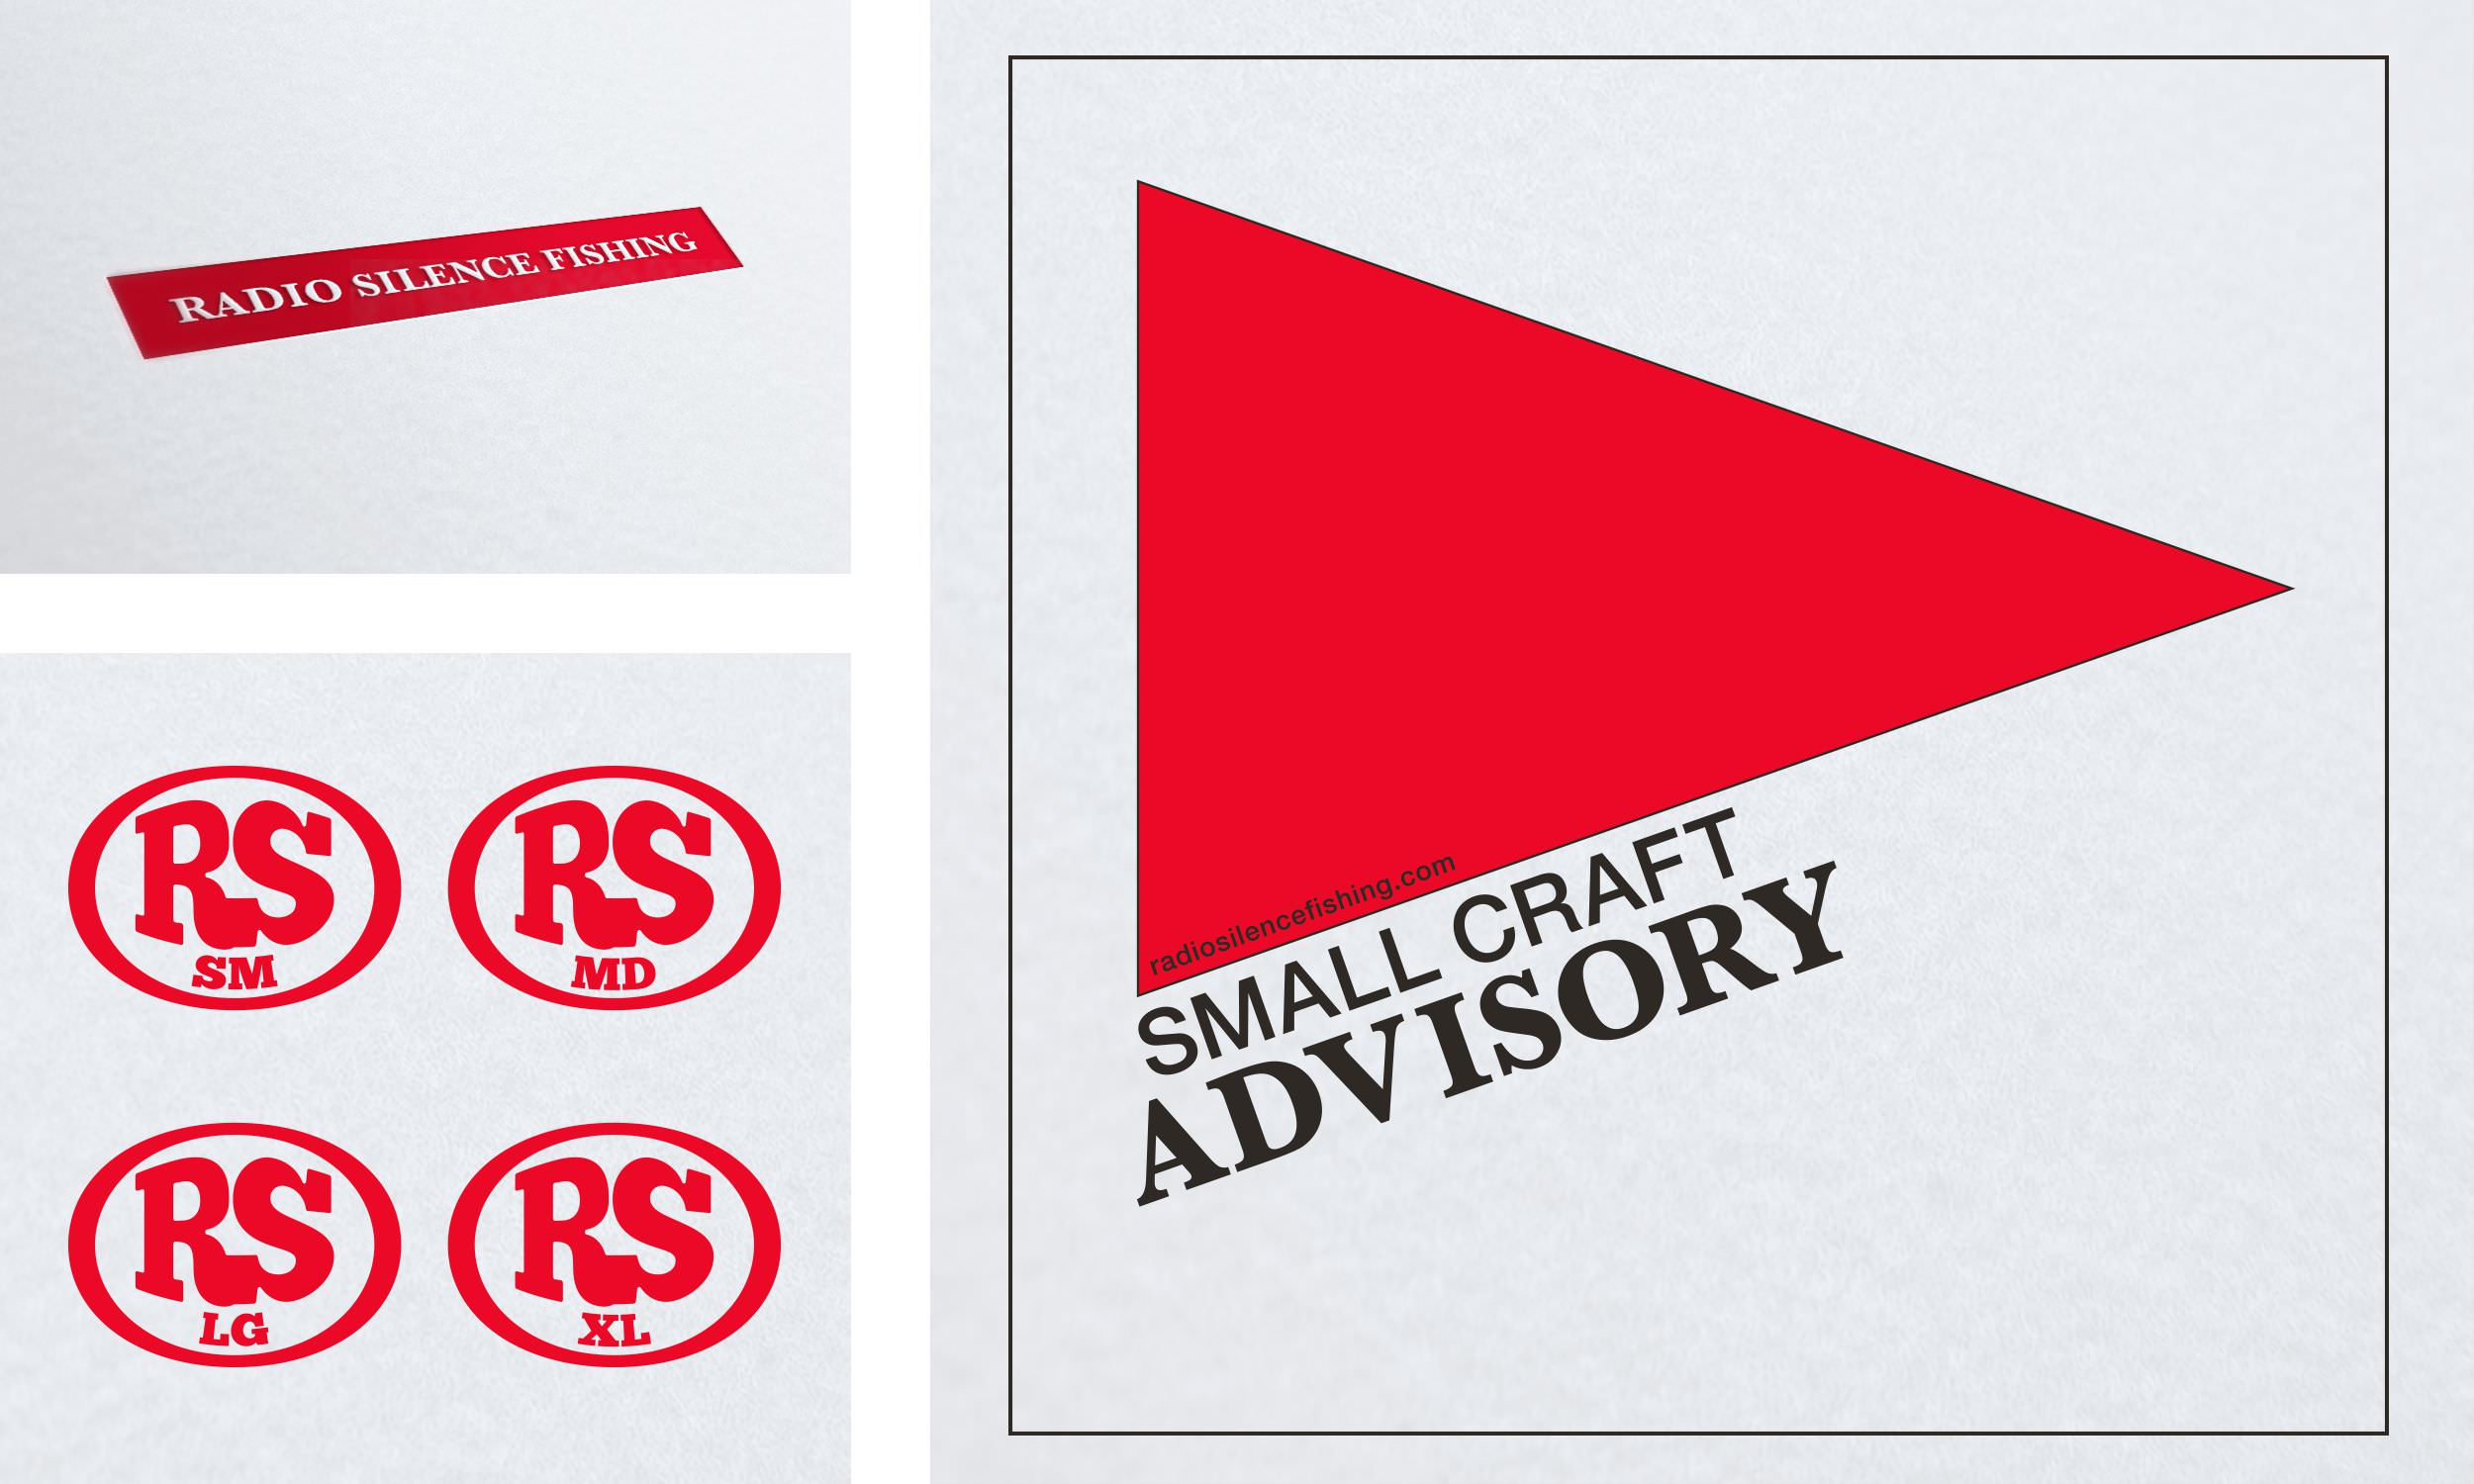 Small Craft Advisory - Front Hit, Back Hit, and Size Tags